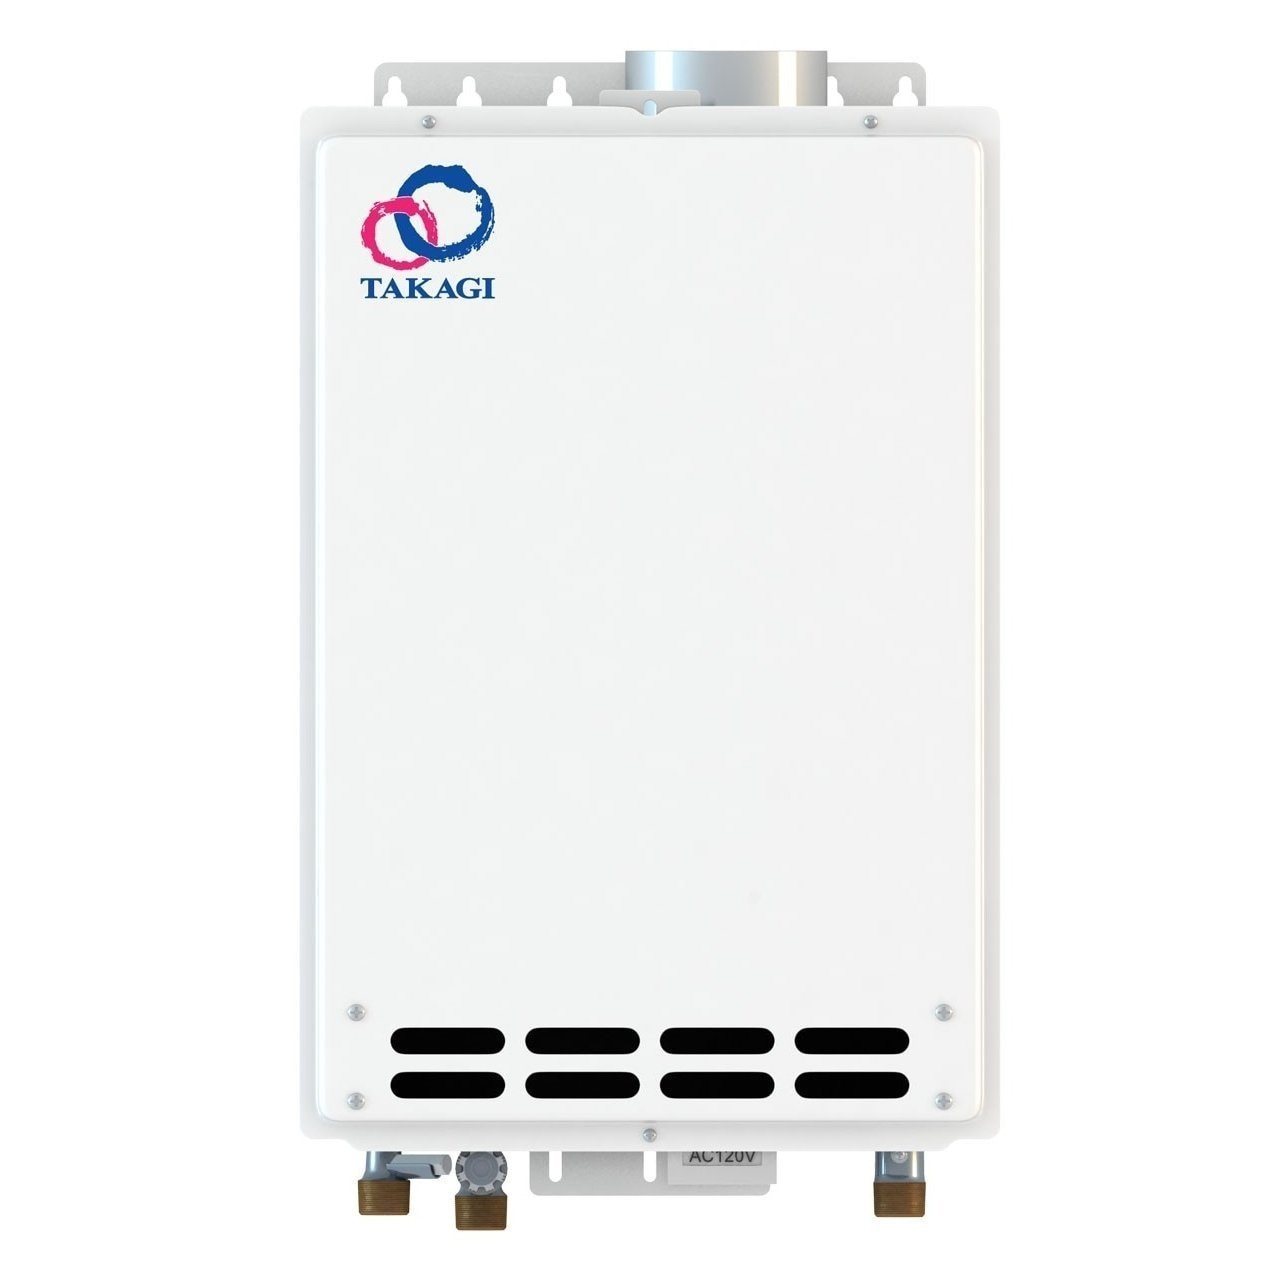 TAKAGI T-KJr2-IN-NG Indoor Tankless Water Heater Natural ...